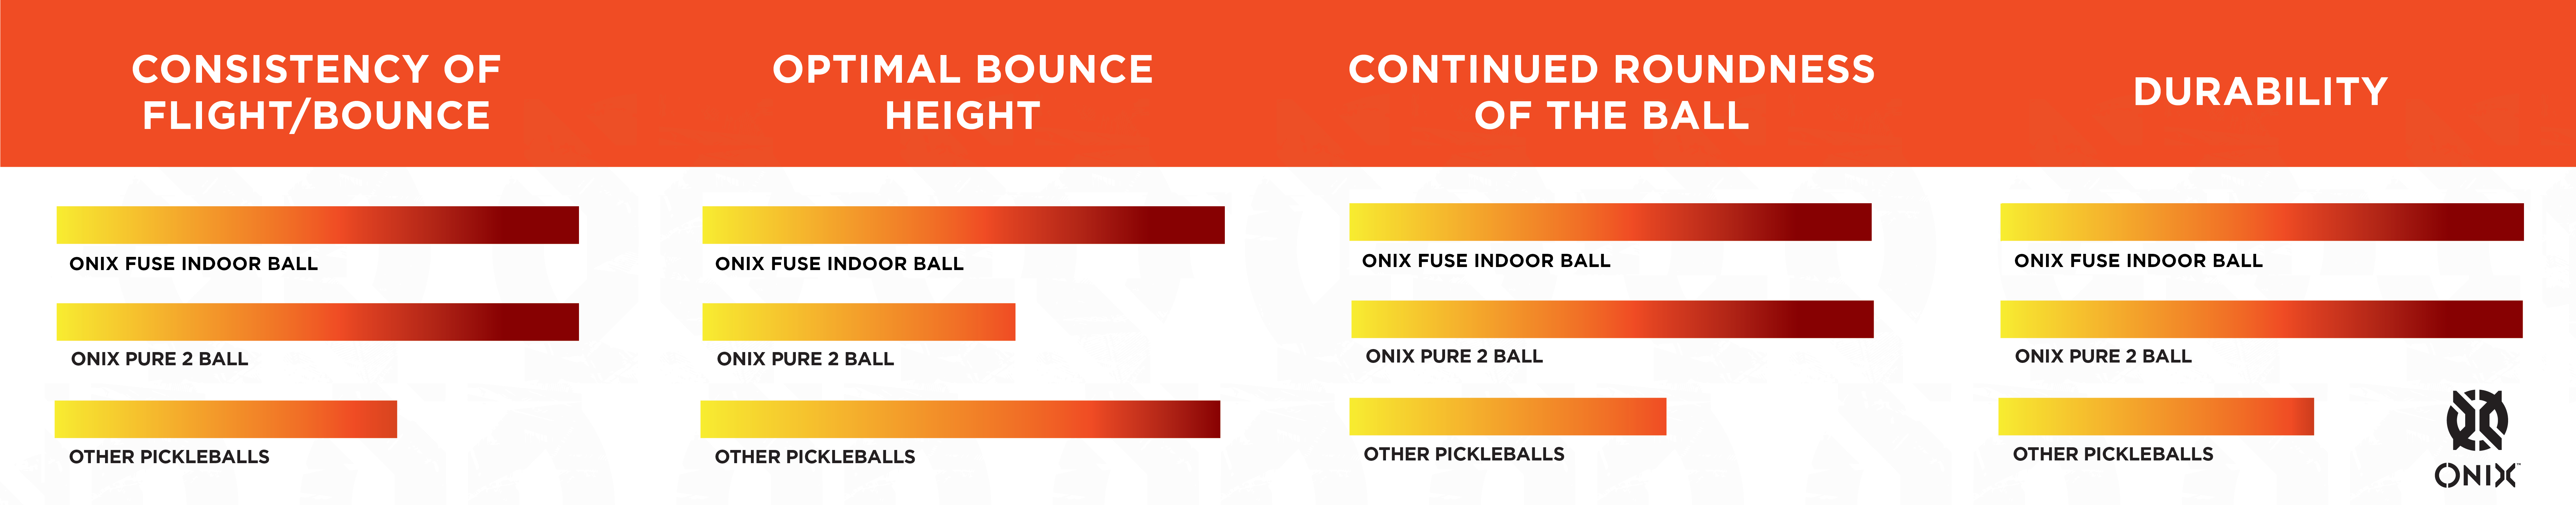 Chart comparing Onix pickleballs on flight/bounce consistency, optimal bounce height, continued ball roundness, durability